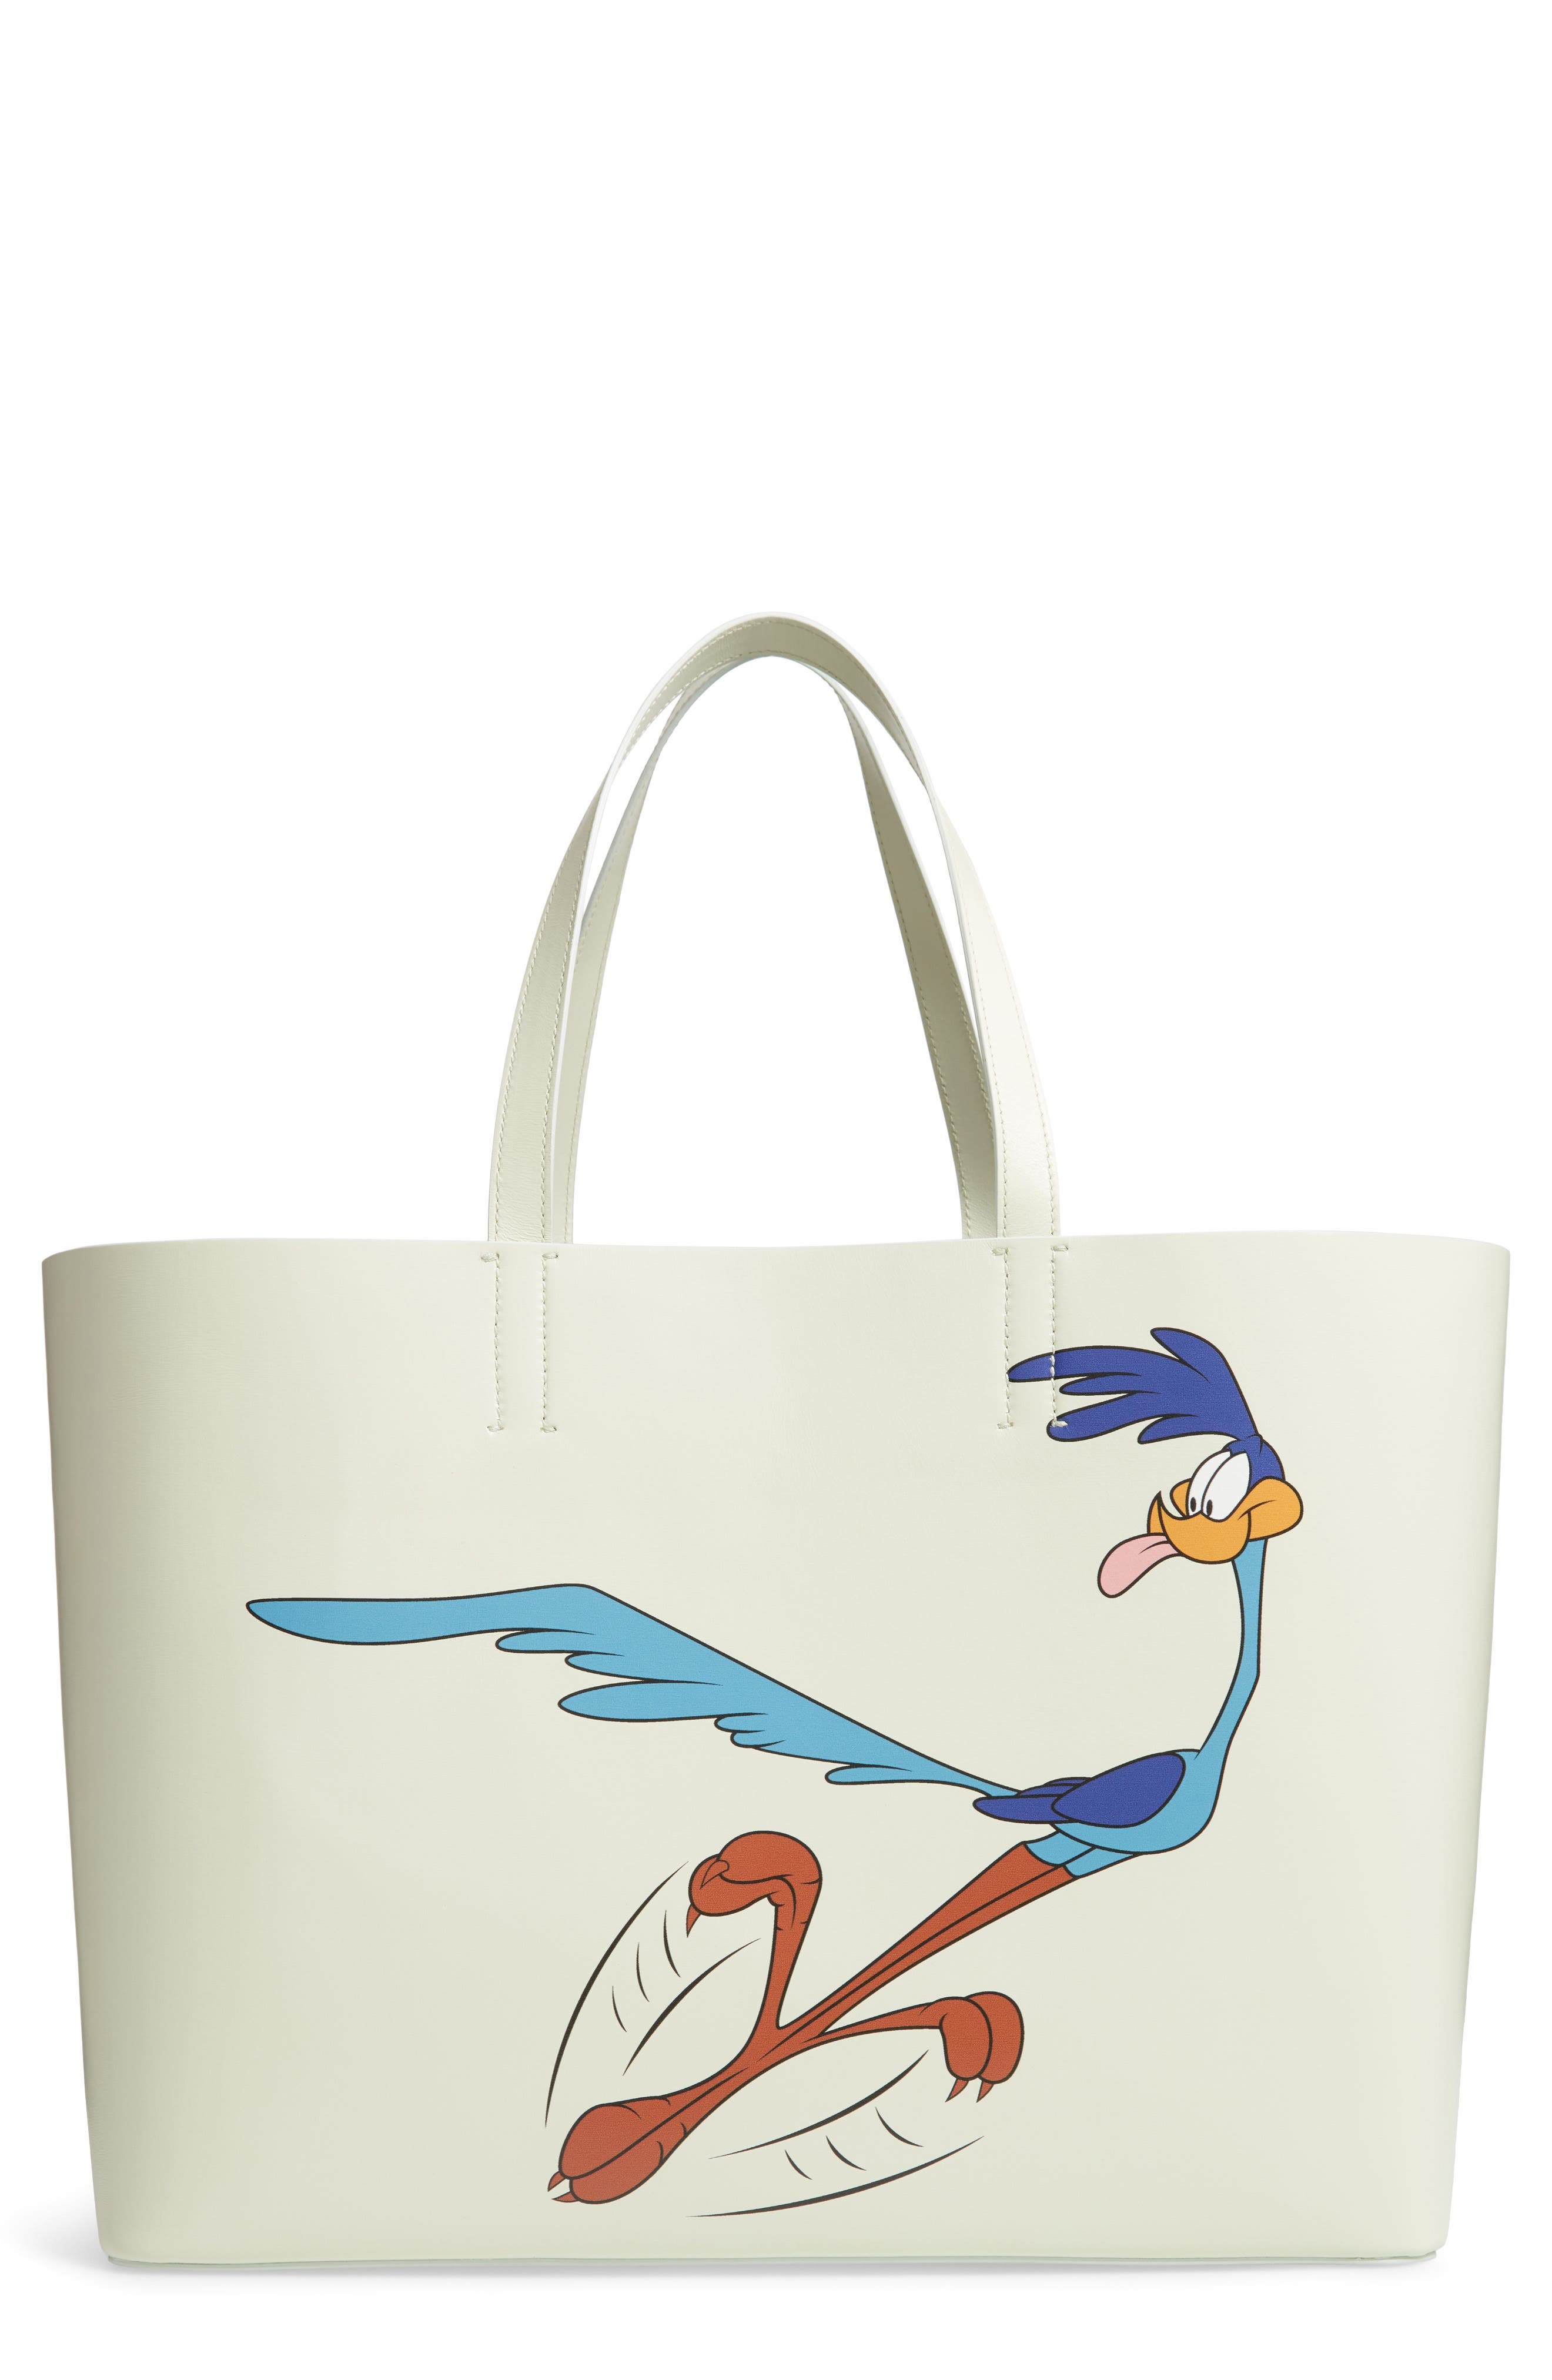 CALVIN KLEIN 205W39NYC,                             Road Runner East/West Leather Tote,                             Main thumbnail 1, color,                             053